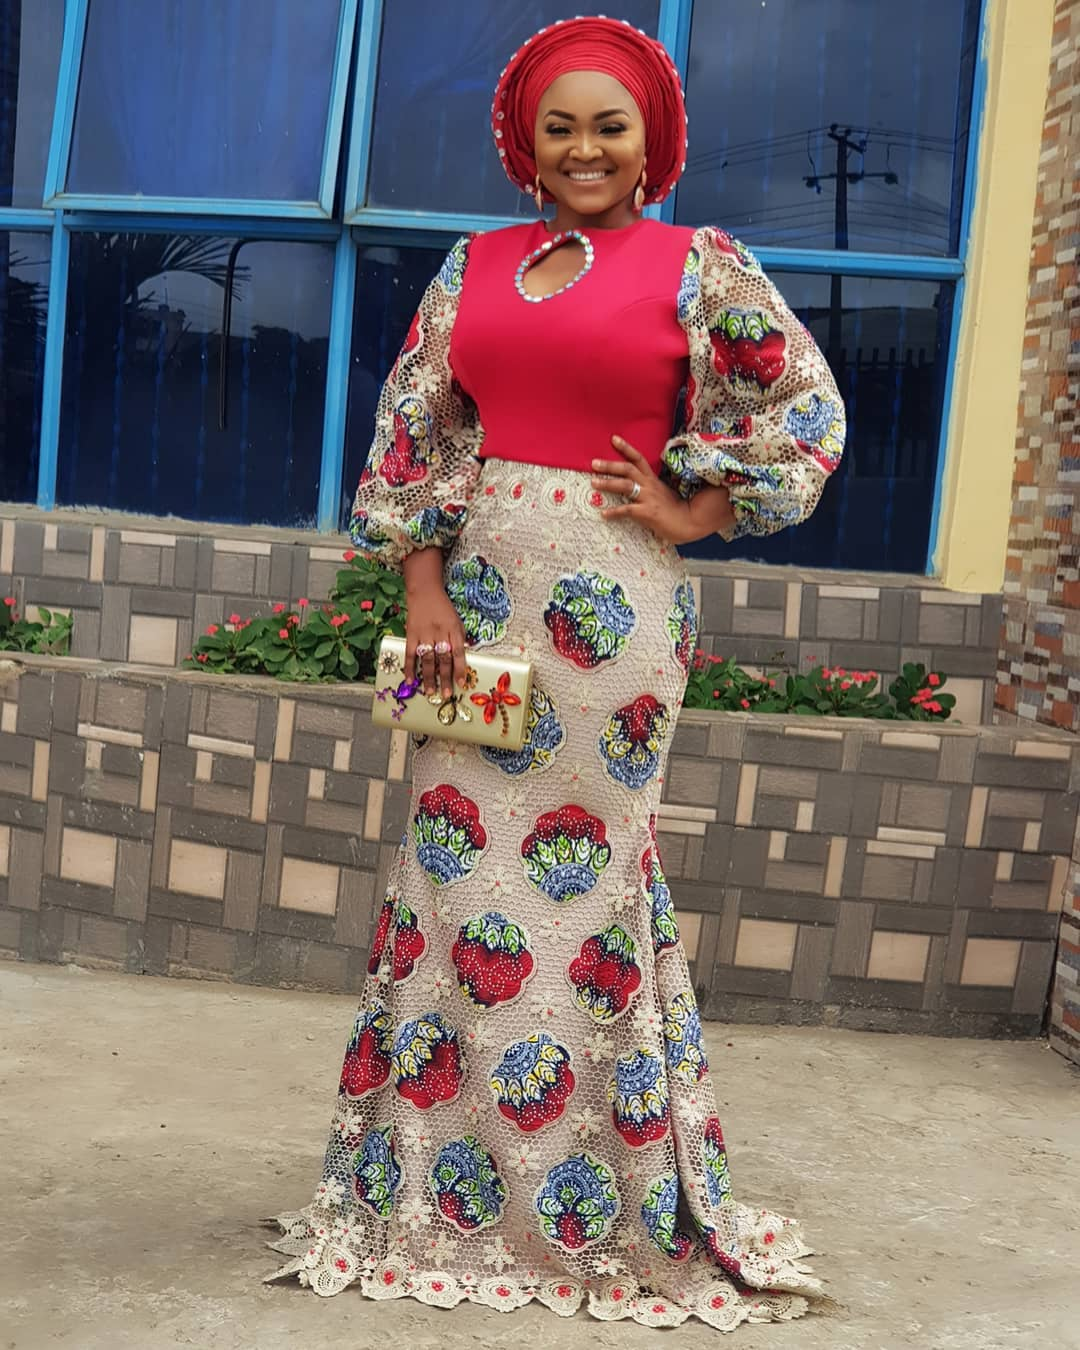 big-girl-mighty-god-mercy-aigbe-slays-in-owambe-look-as-she-shows-off-her-big-sister-4